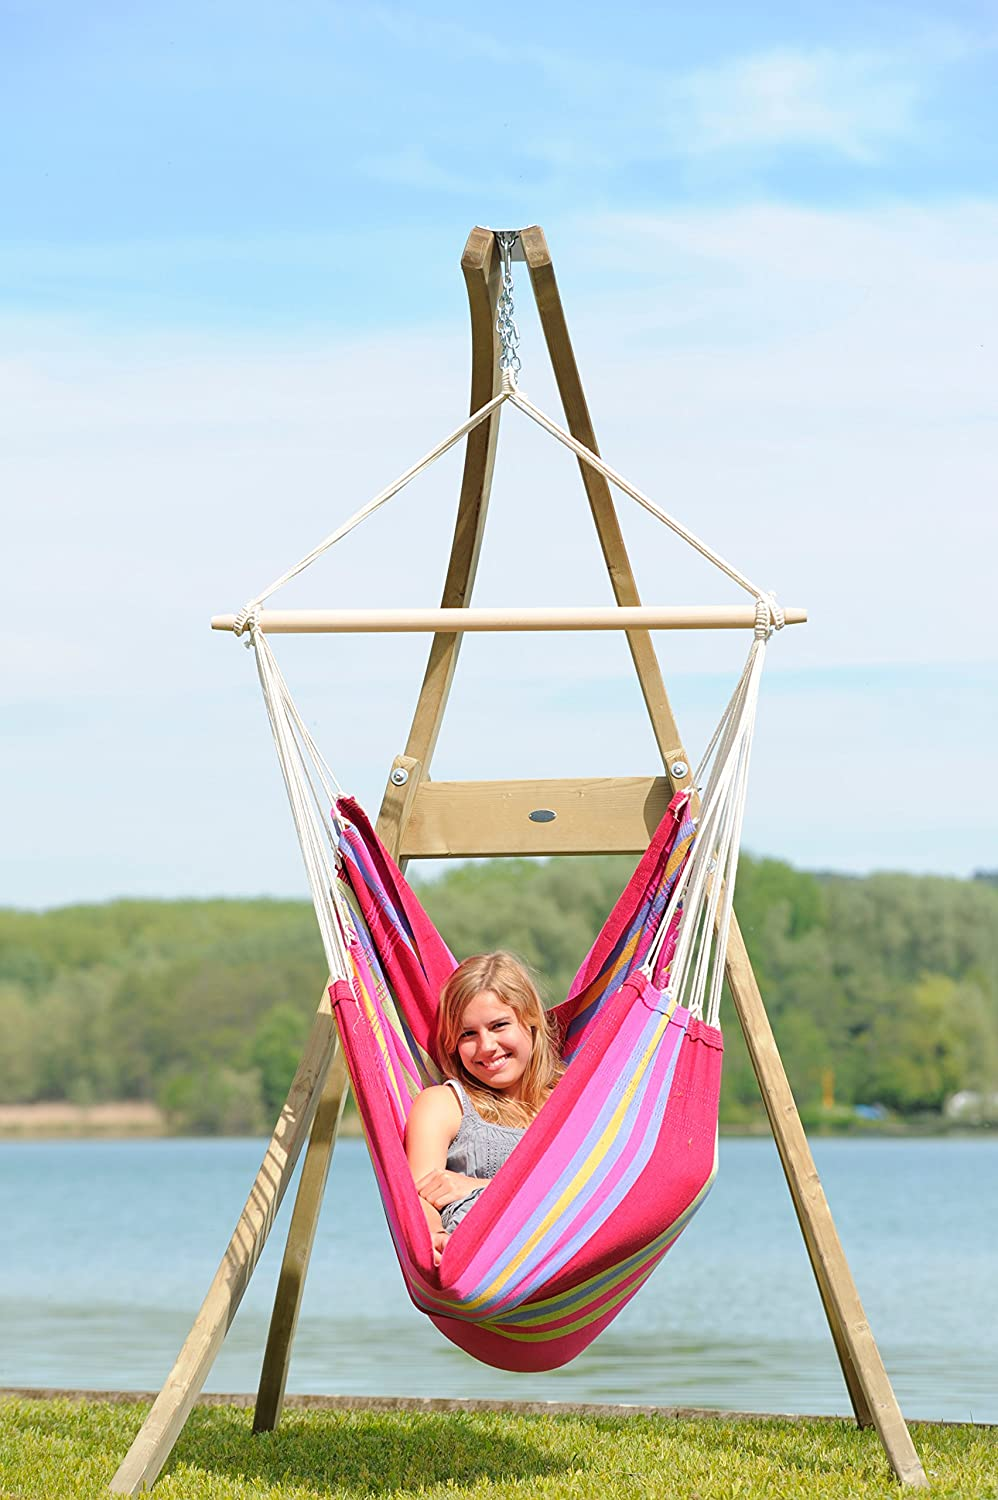 Amazon Com Byer Of Maine Atlas Hanging Hammock Chair Stand Treated Wood Construction Indoors And Outdoors Adjustable Height Holds Up To 350lbs Hammock Accessories Garden Outdoor